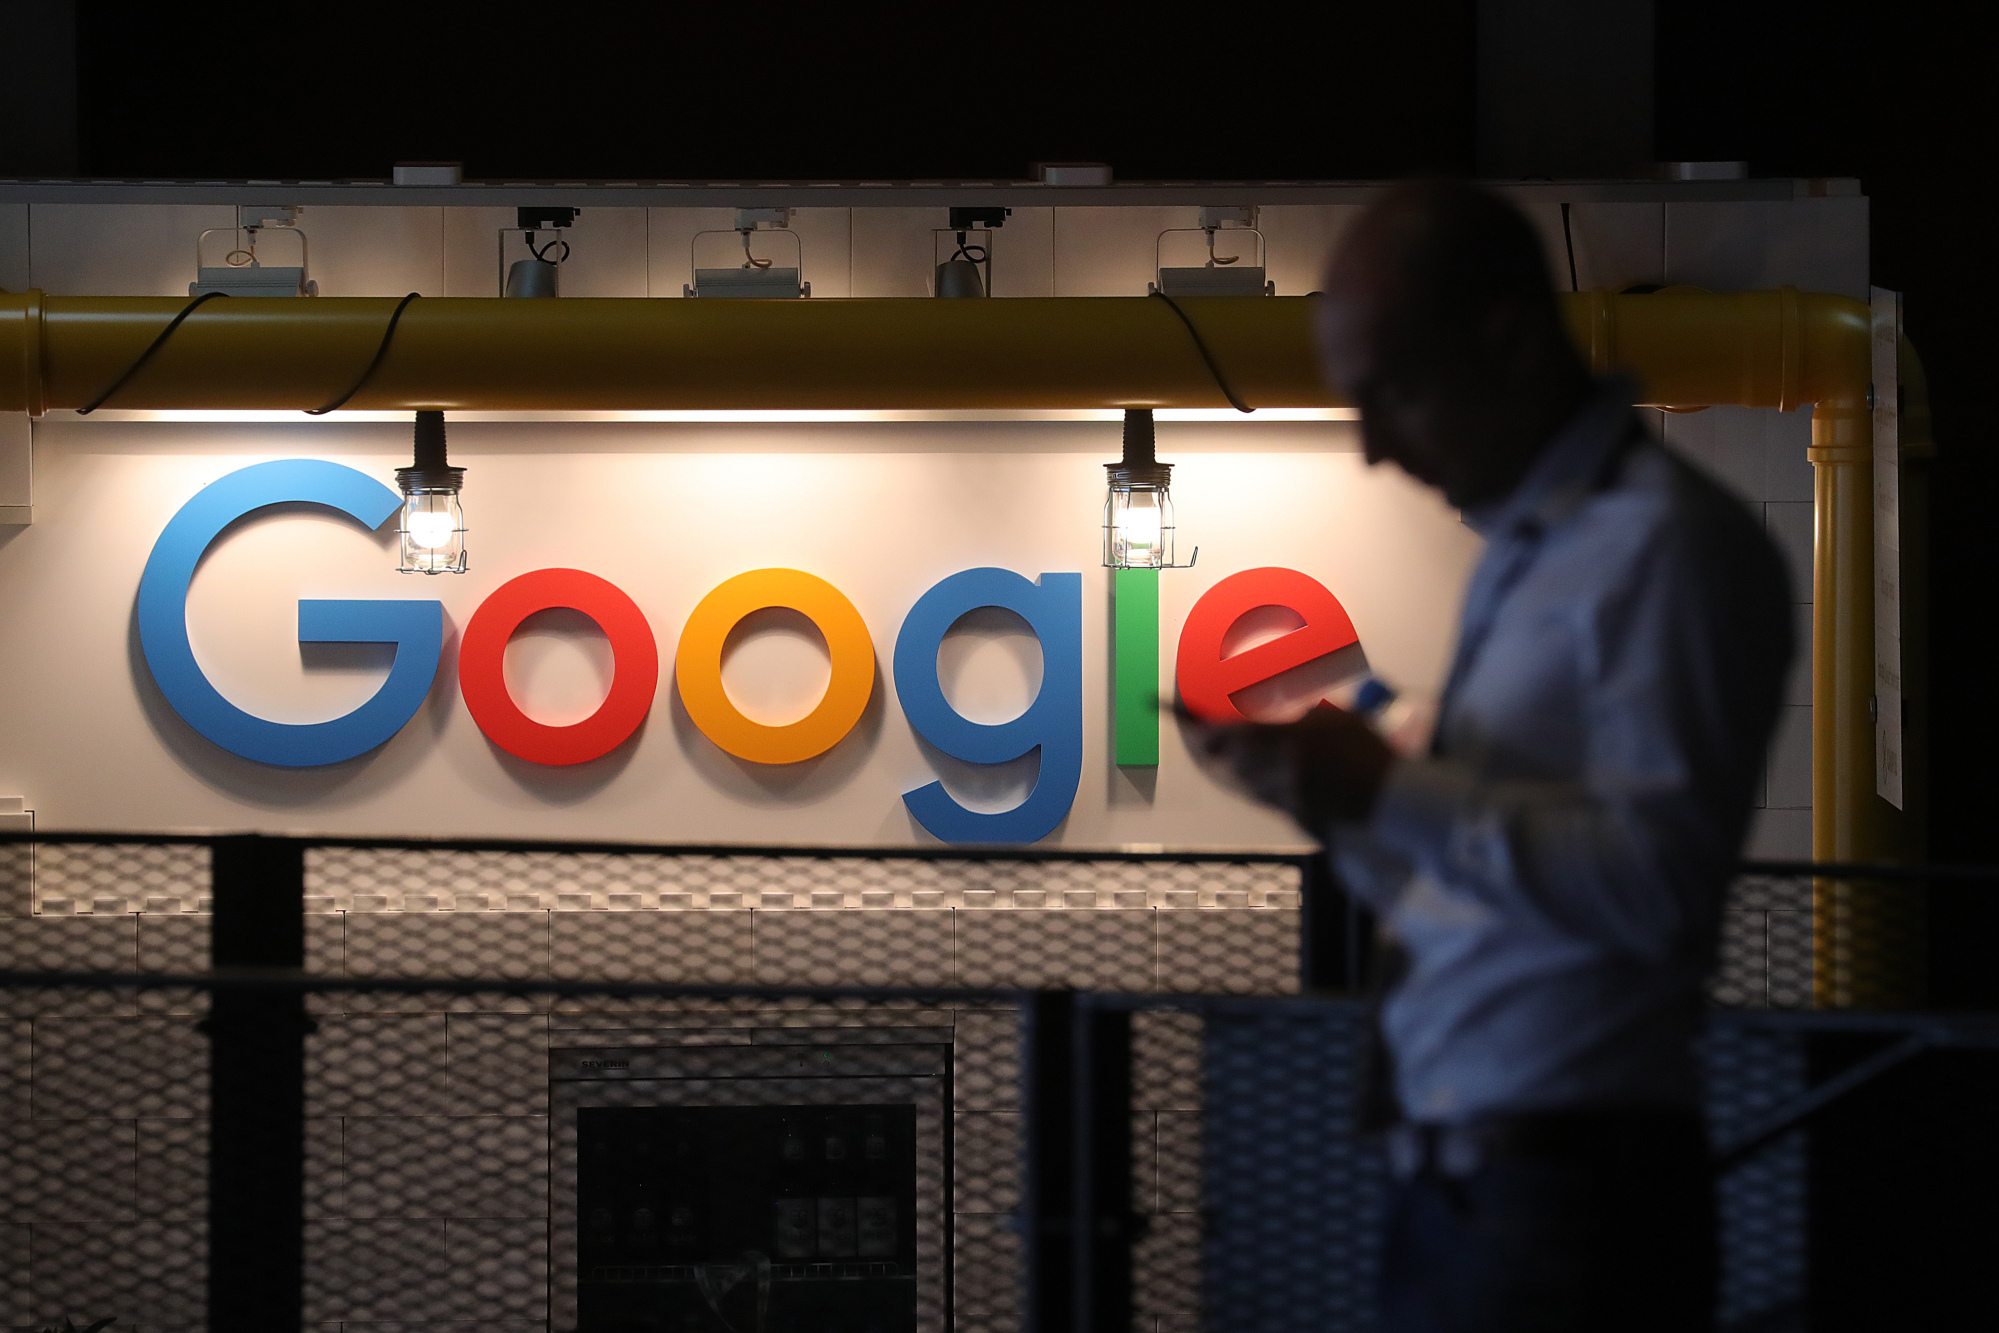 Techmeme: Sources: Google, via a deal with Mastercard, gets data